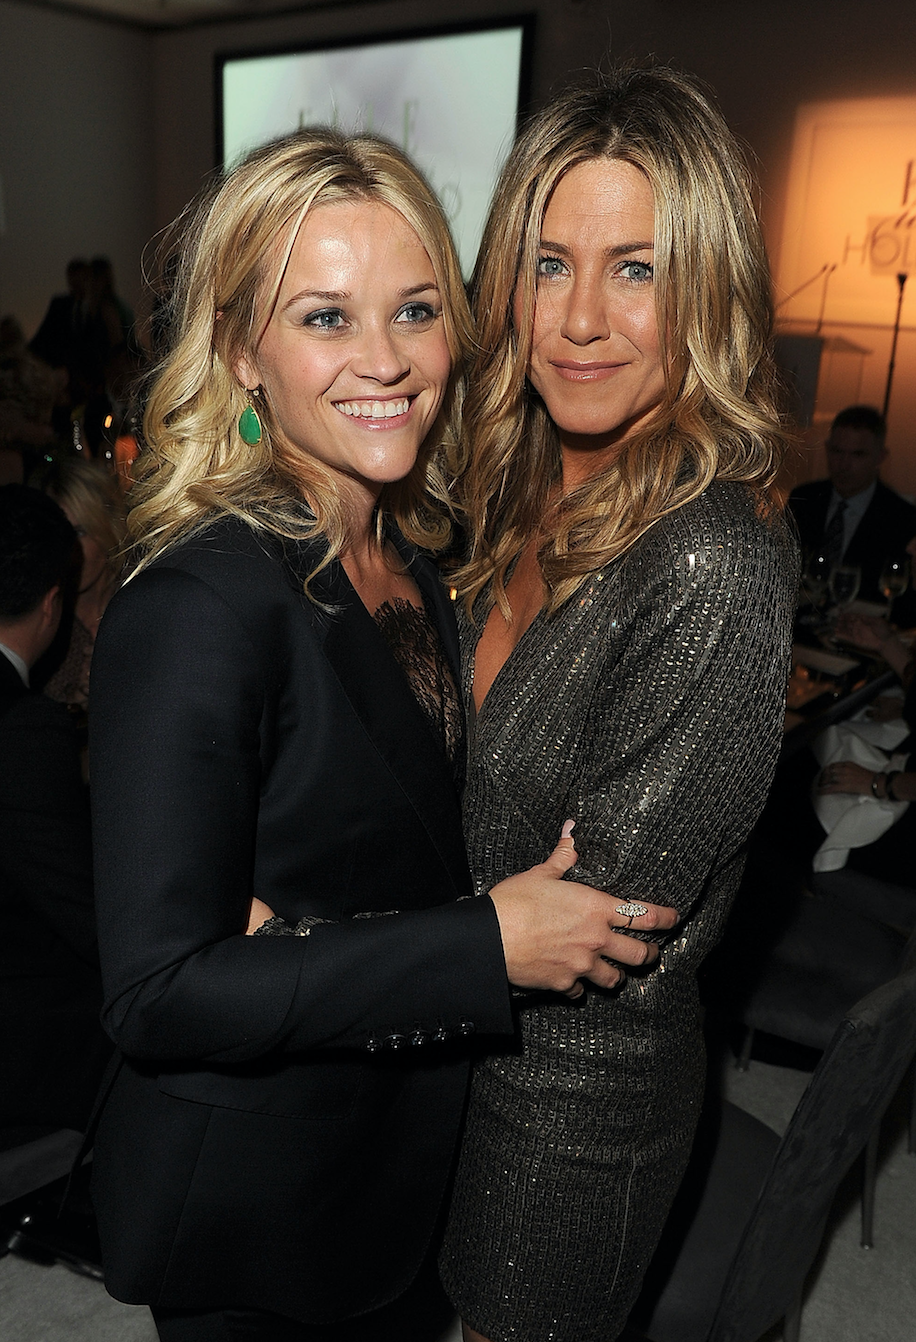 'Friends' star Jennifer Aniston is making her TV comeback - with Reese Witherspoon